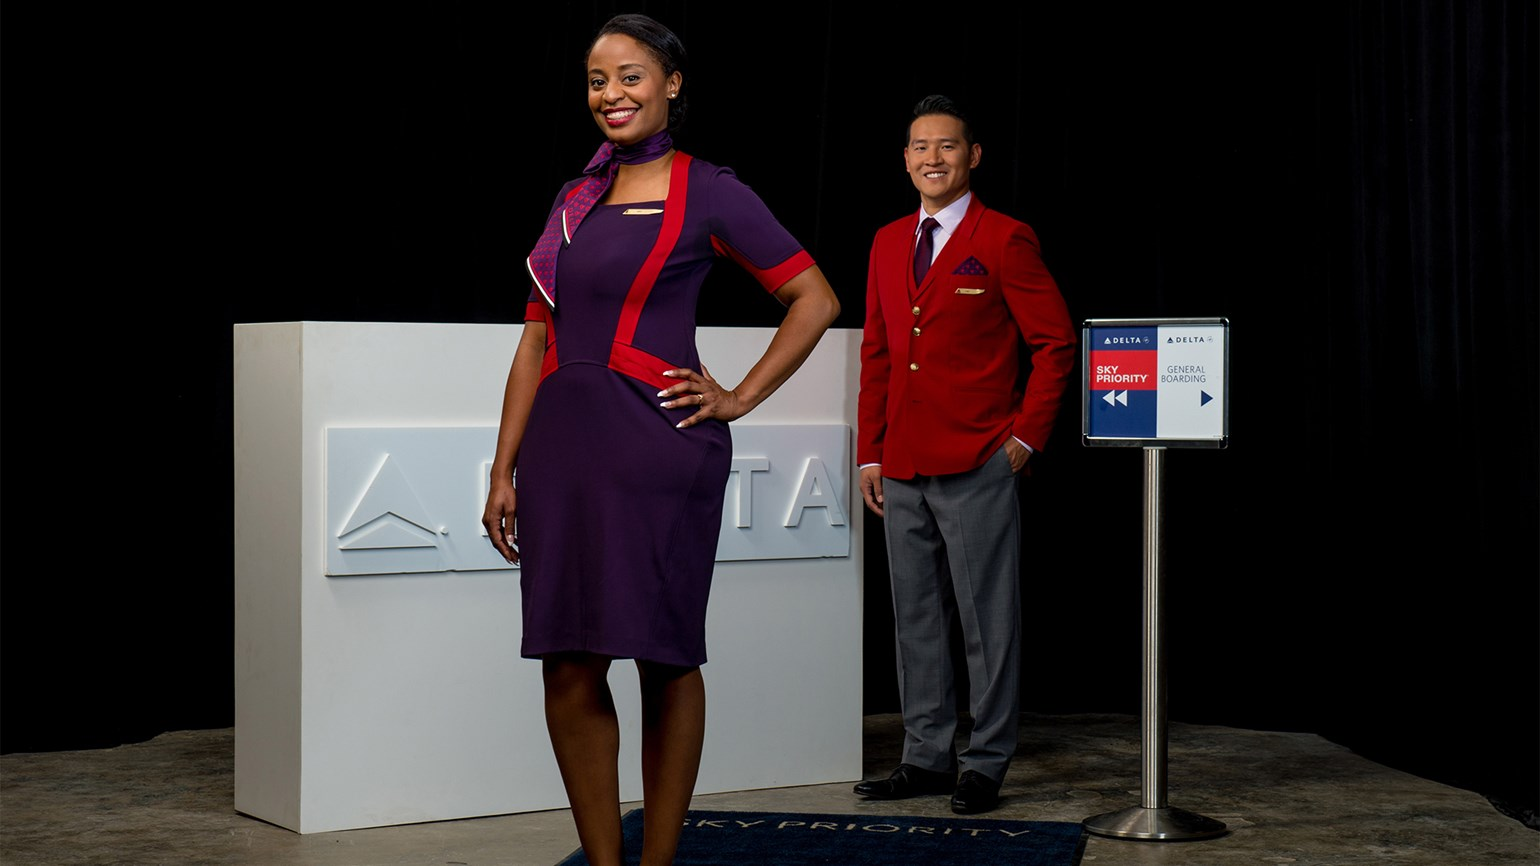 Delta employees getting new uniforms